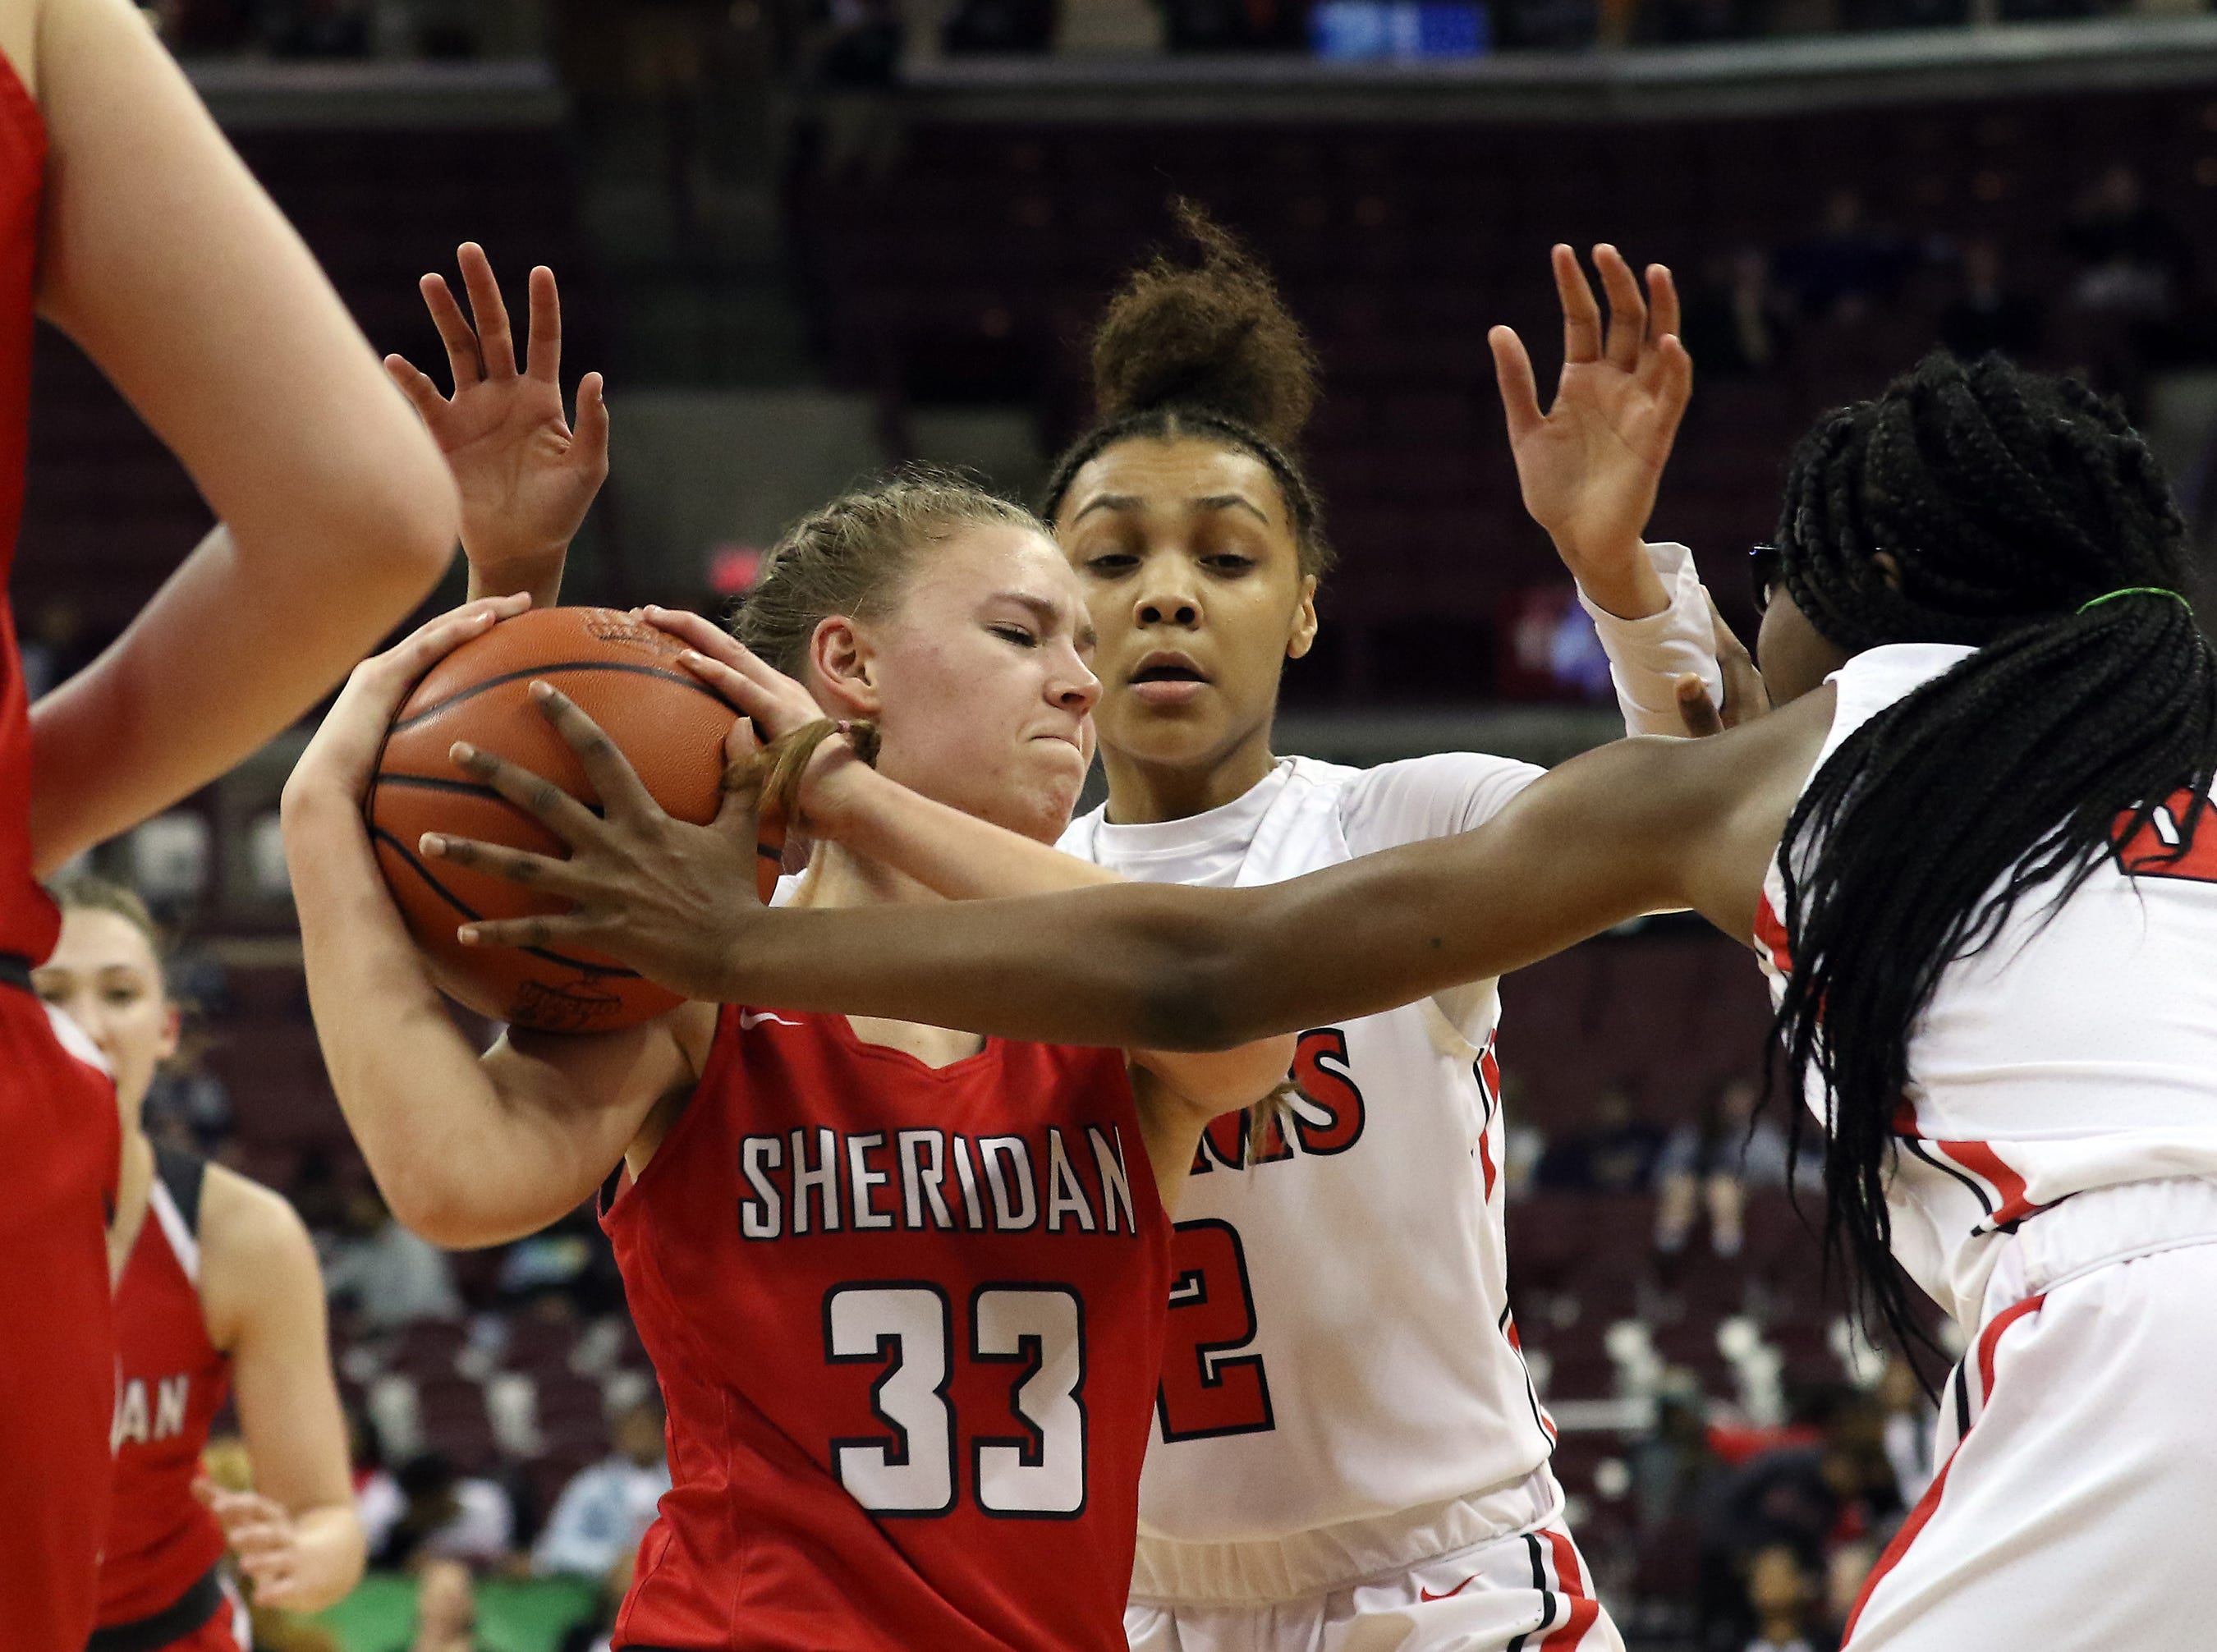 Sheridan's Emma Conrad fights for possession against Toledo Rogers during the DII state semis in Columbus on Thursday.